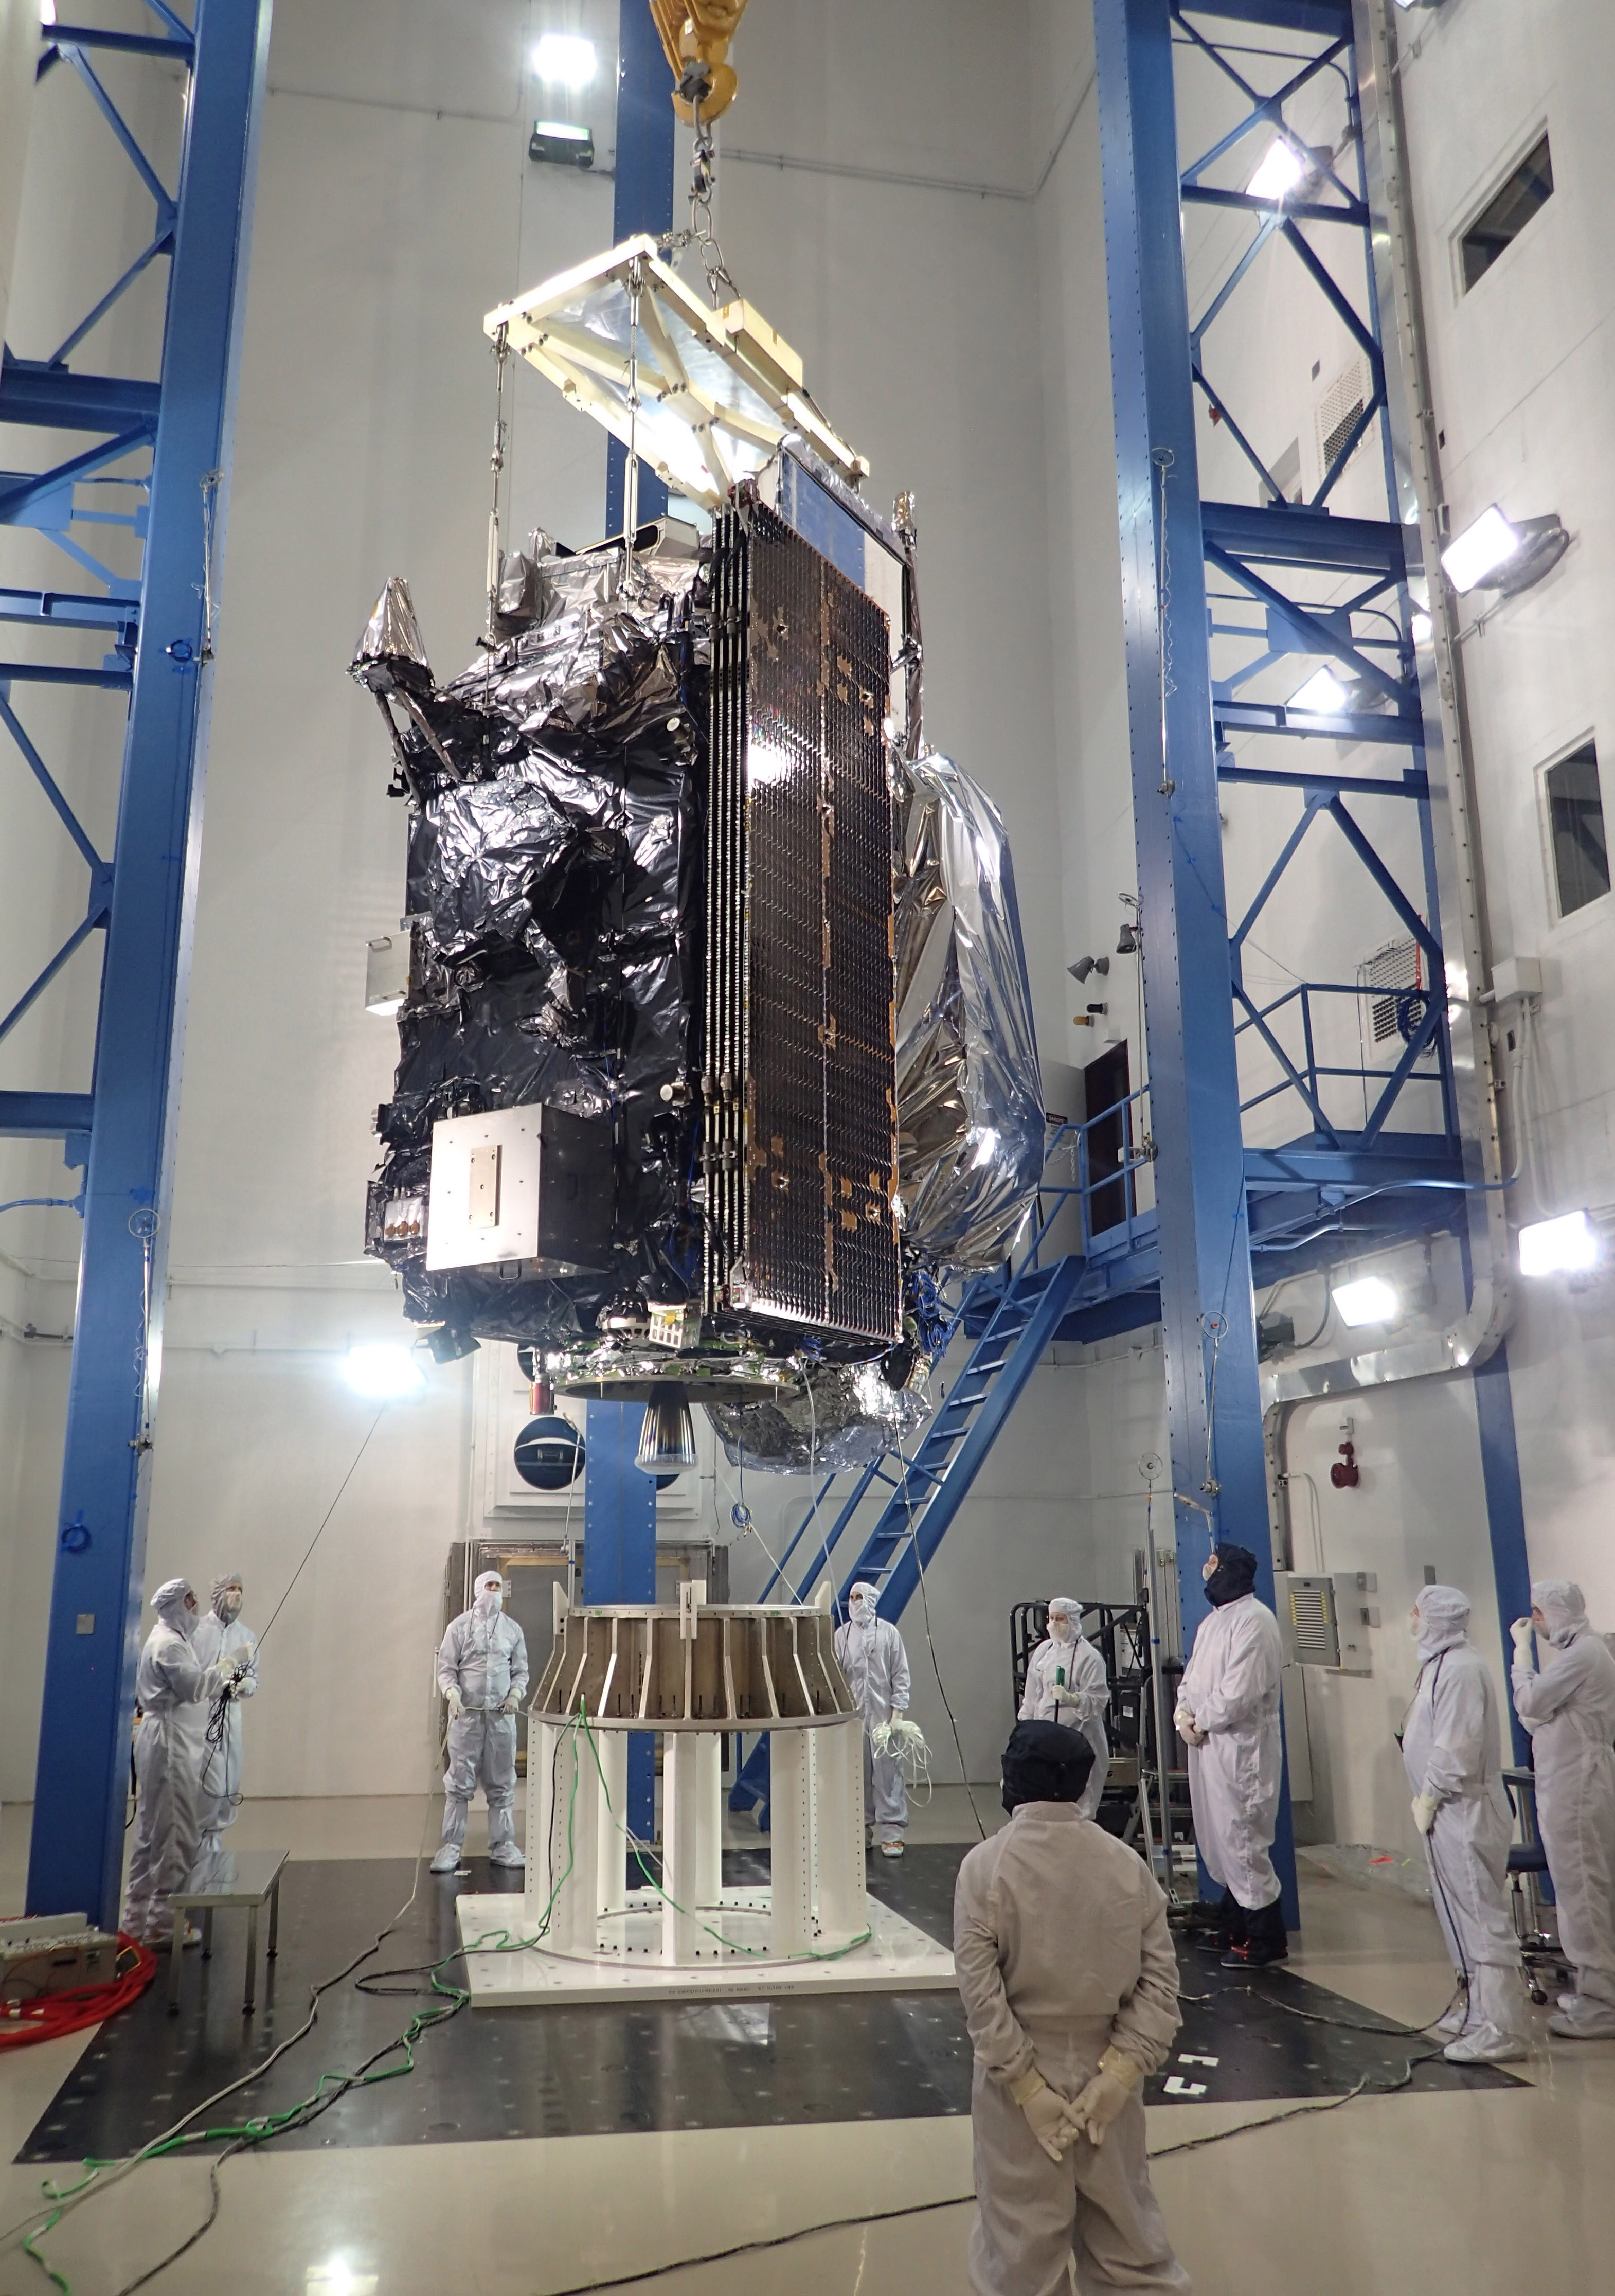 GOES-R satellite in acoustics testing